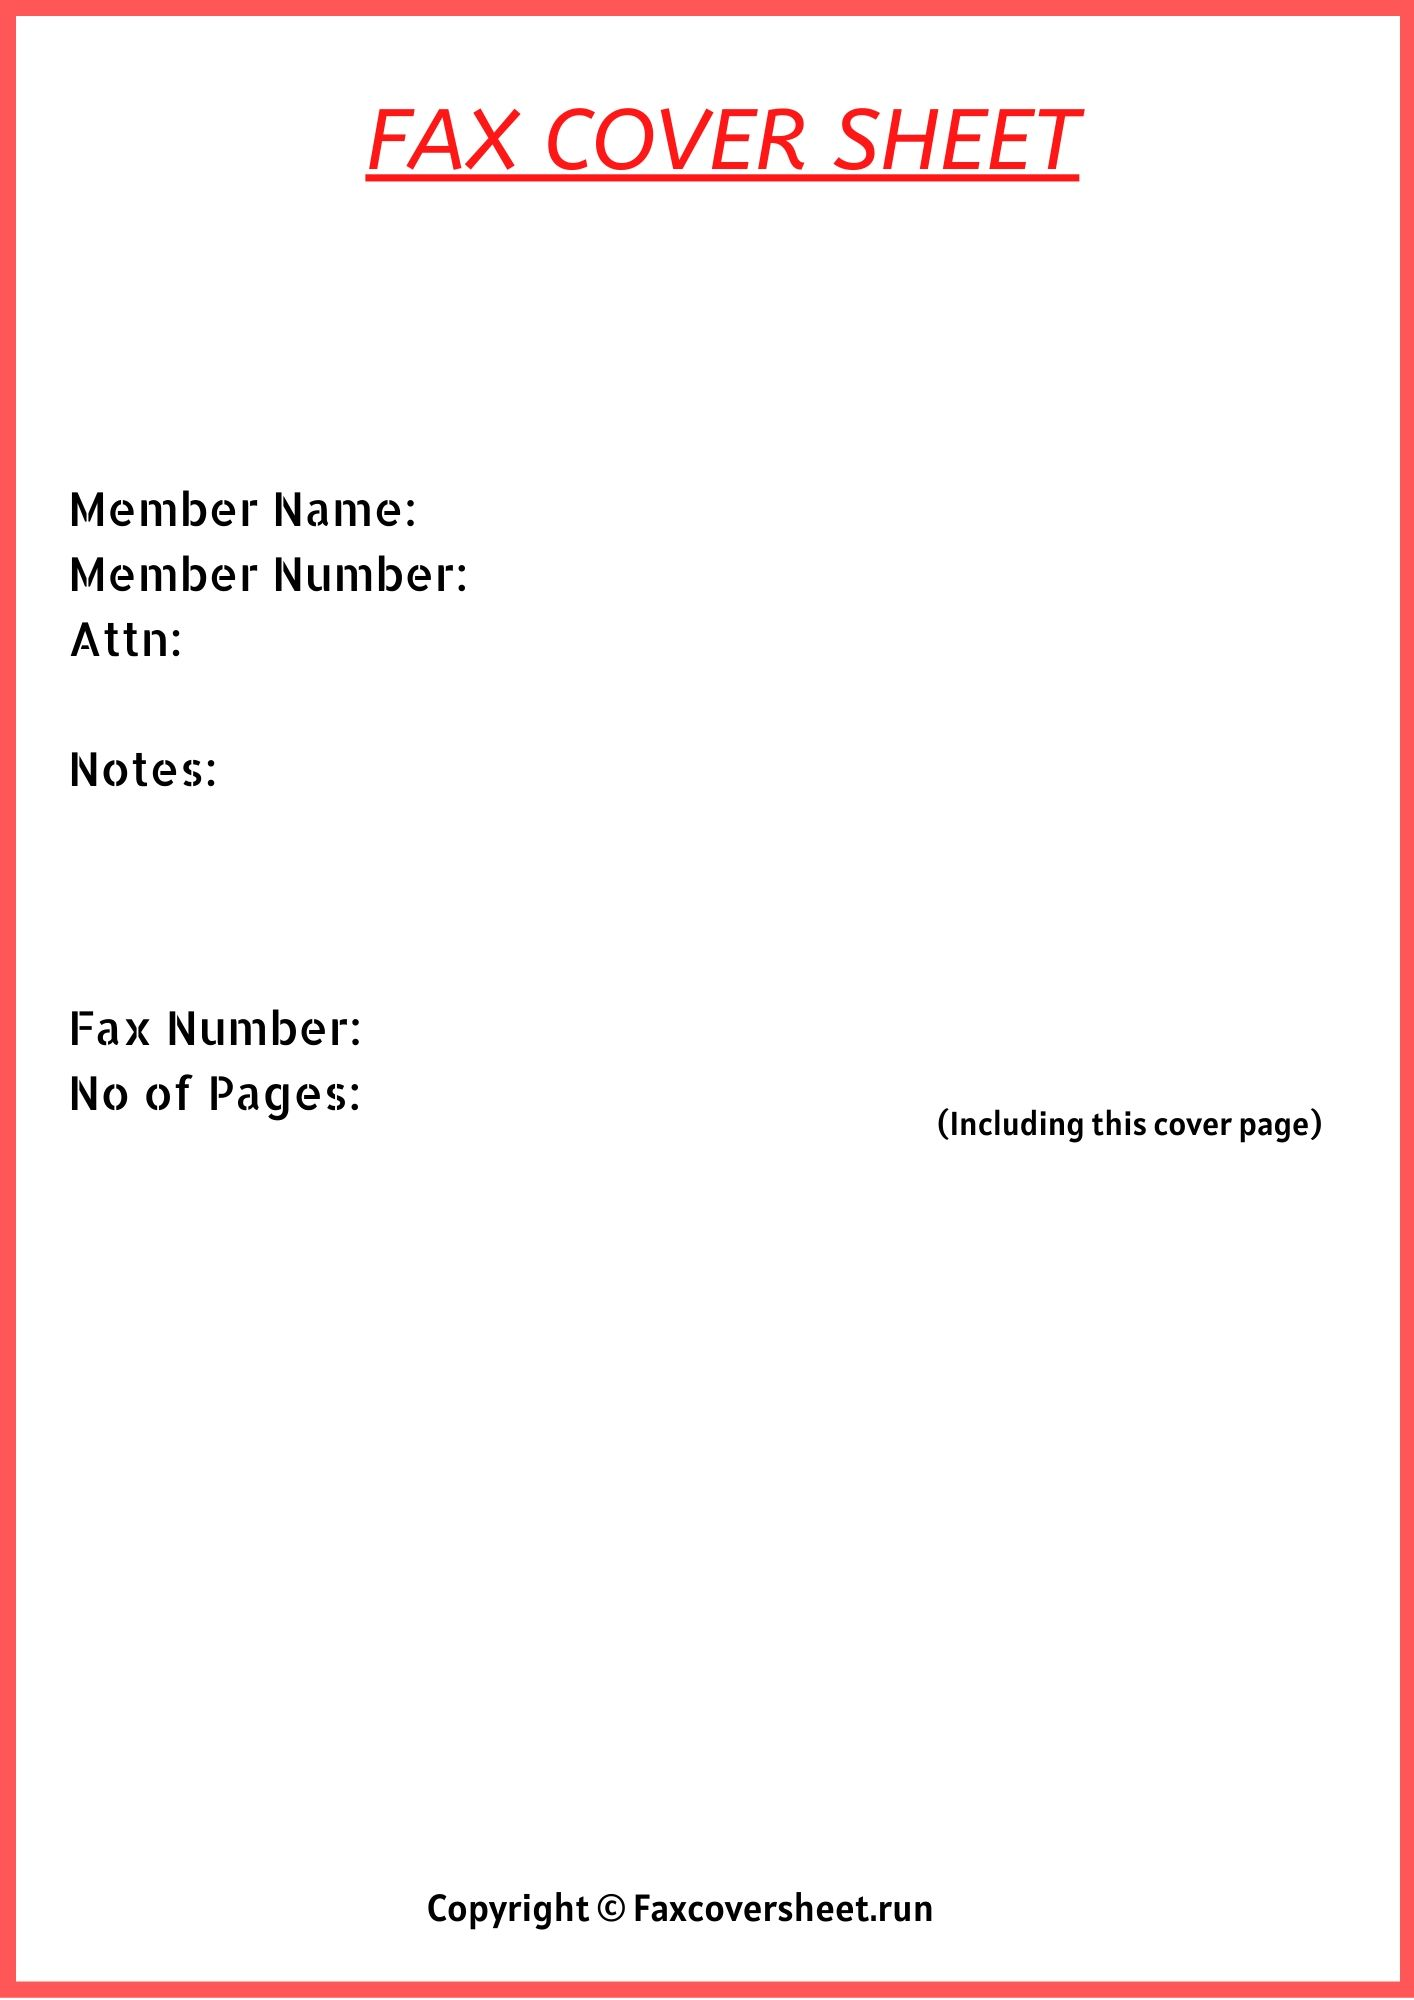 Generic Fax Cover Sheet Templates